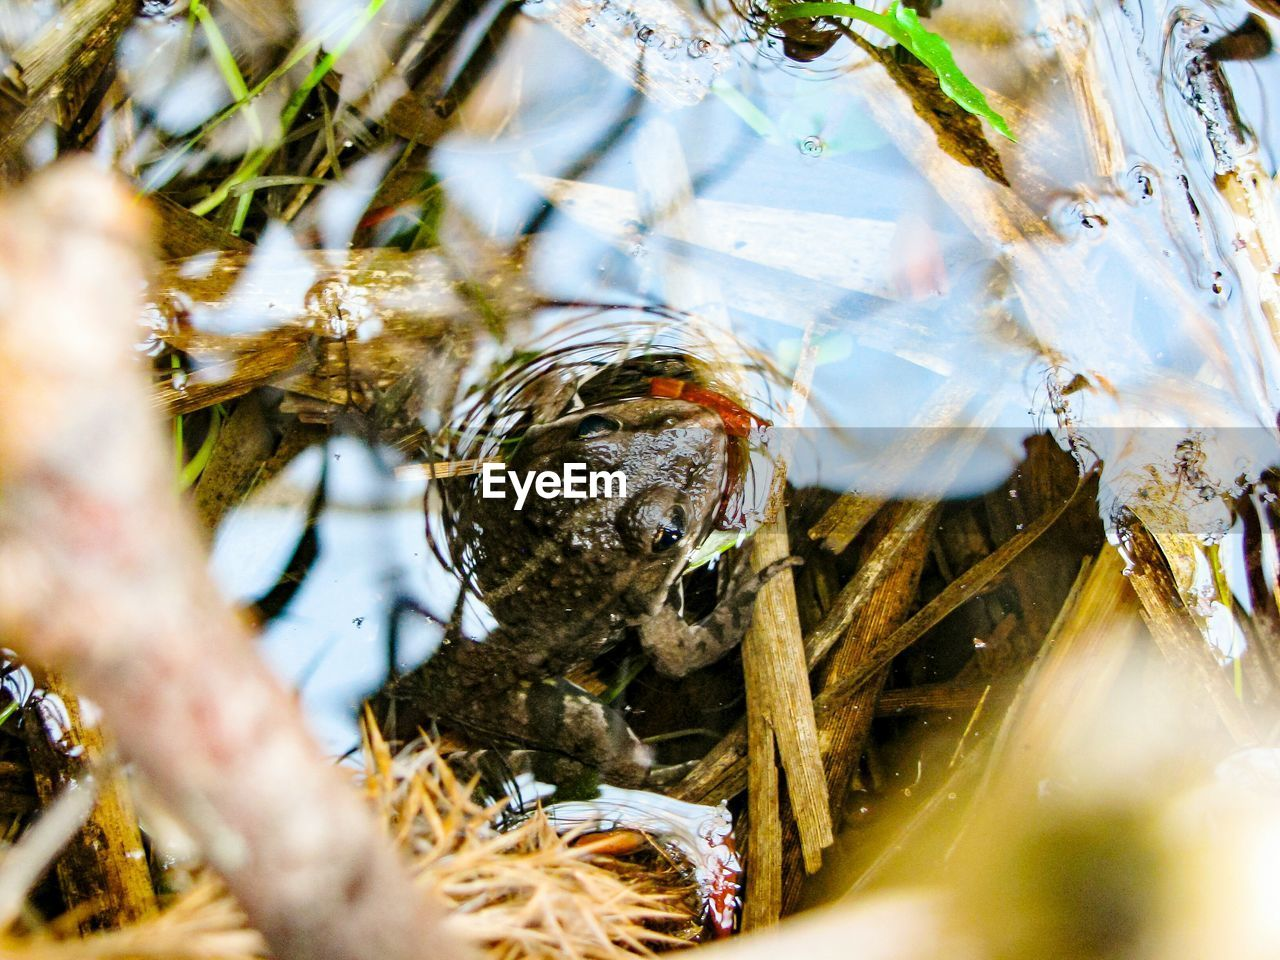 animal, animal wildlife, animals in the wild, animal themes, selective focus, one animal, water, nature, day, vertebrate, no people, close-up, high angle view, outdoors, lake, plant, frog, focus on background, amphibian